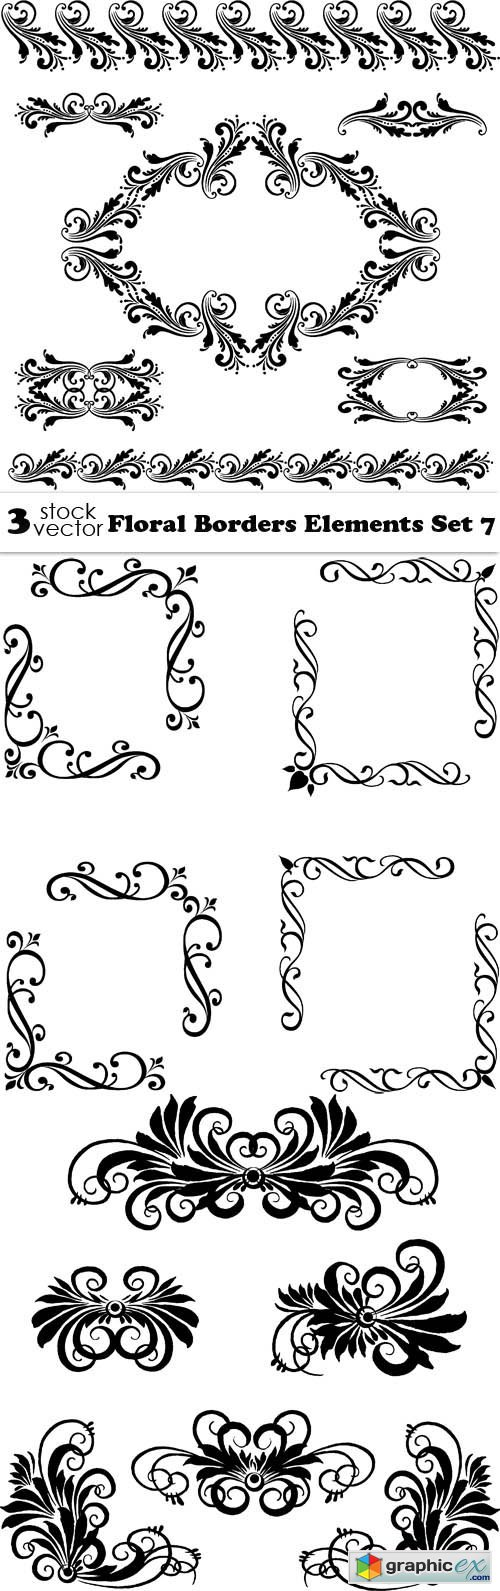 Floral Borders Elements Set 7